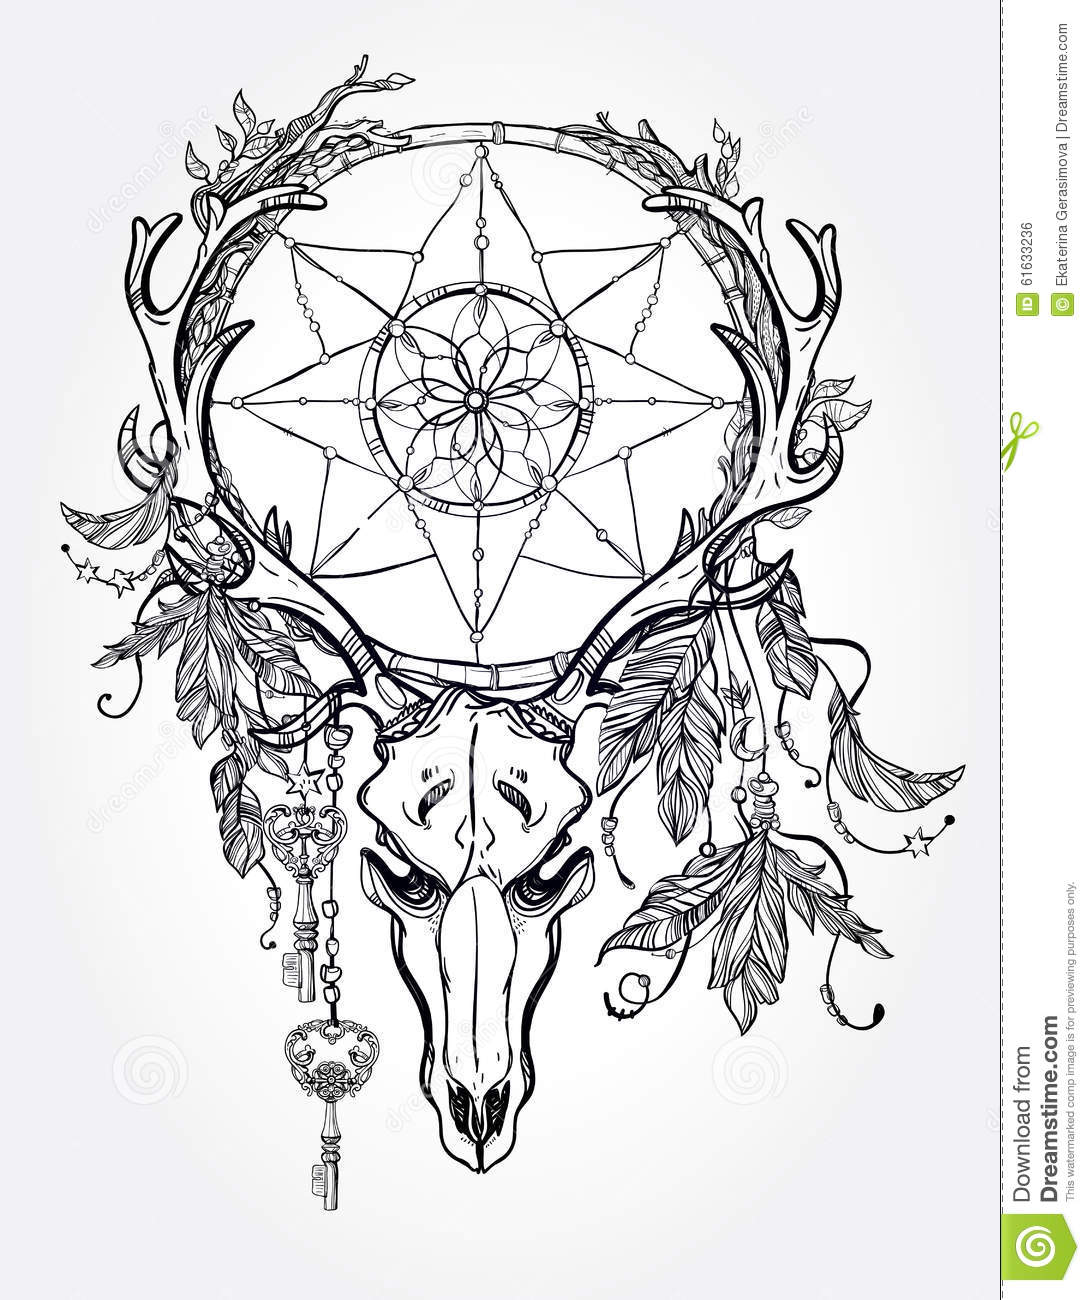 Dear Skull And Dreamcatcher Lineart Stock Vector Image